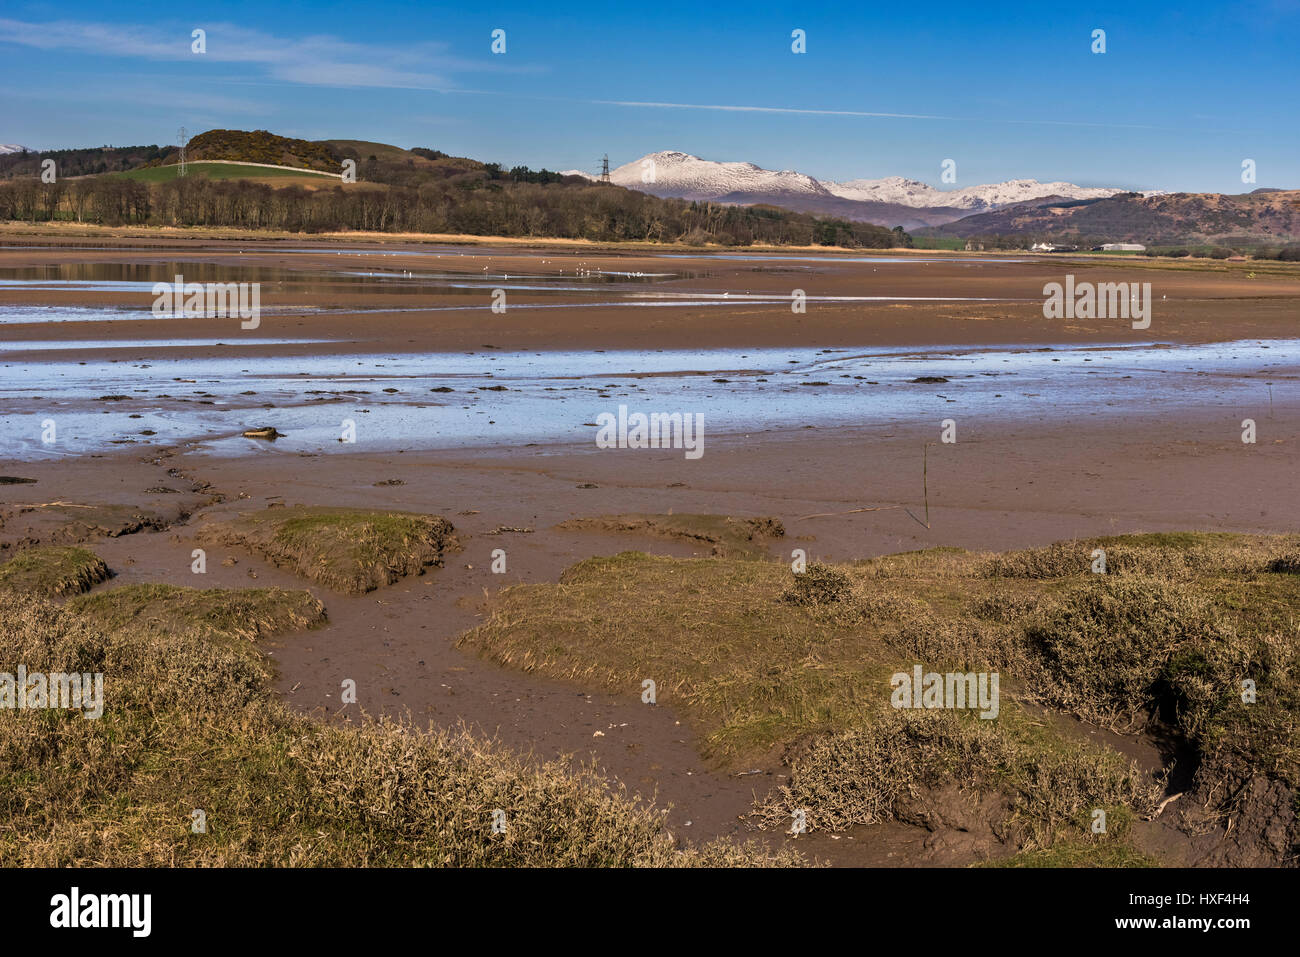 The river Esk estuary in Cumbria with snowy lakeland hills behind. - Stock Image